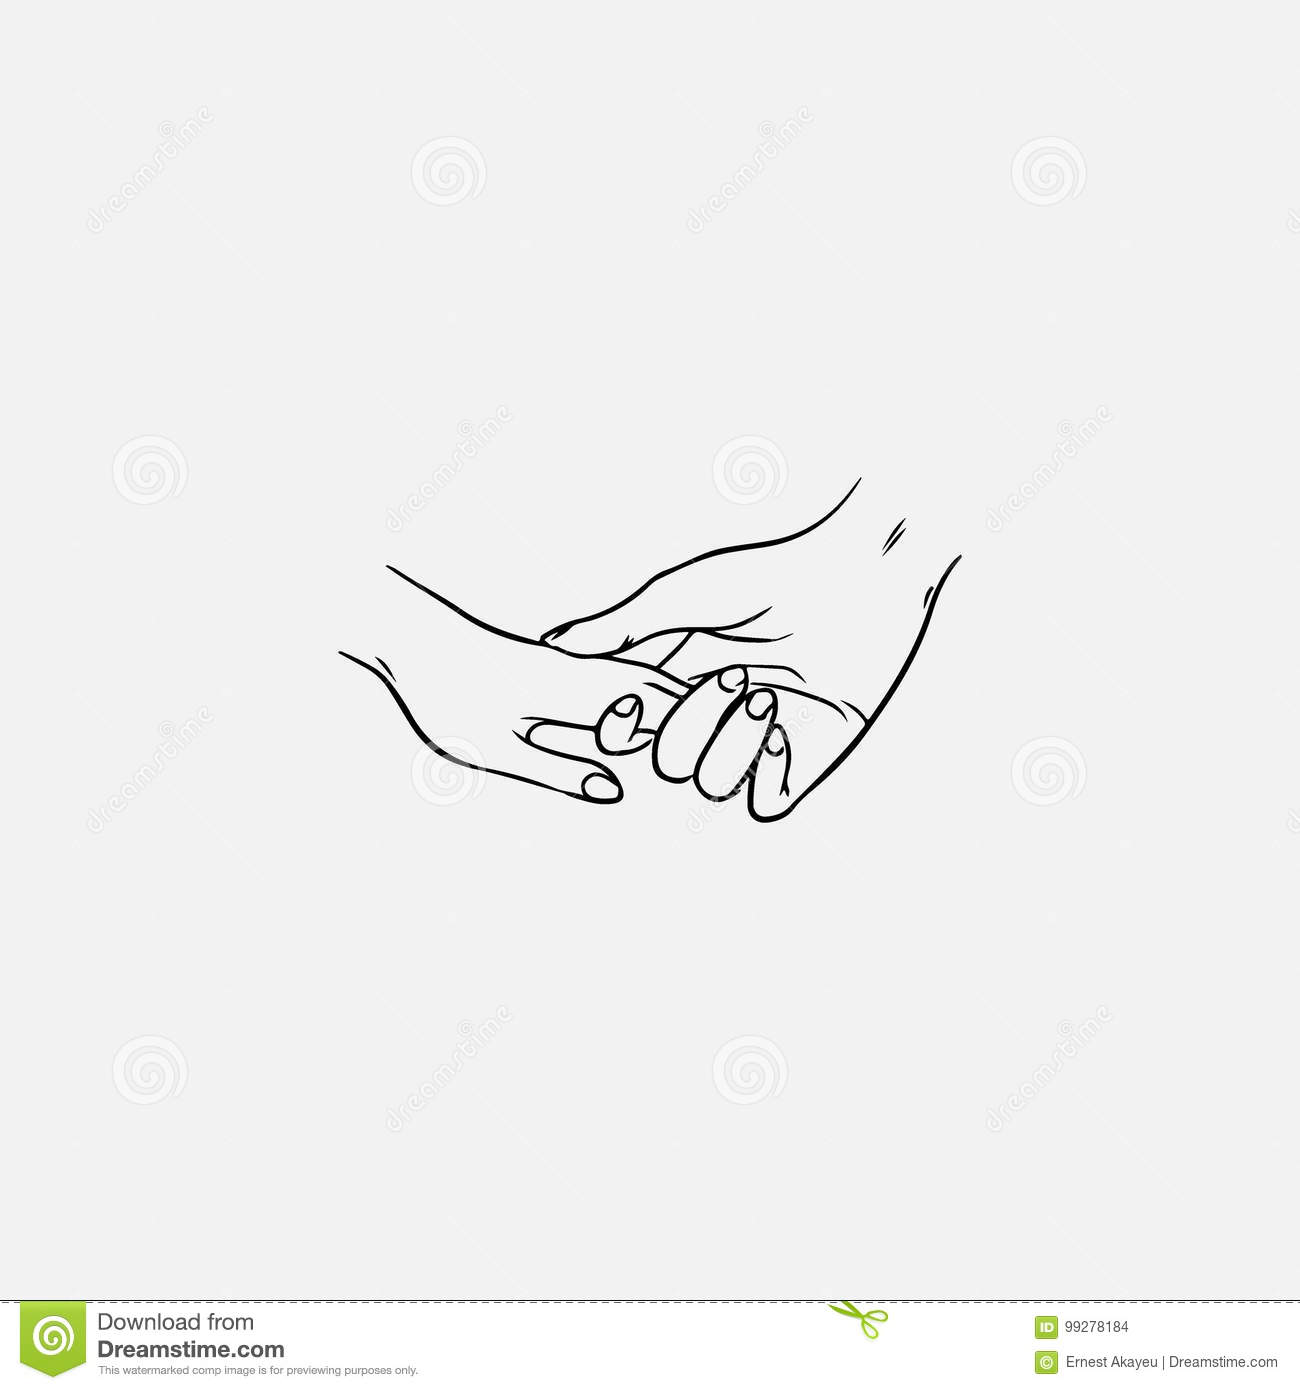 Drawing of holding hands isolated on white background symbol of love dating close relationship intimacy and romance hand drawn black and white vector